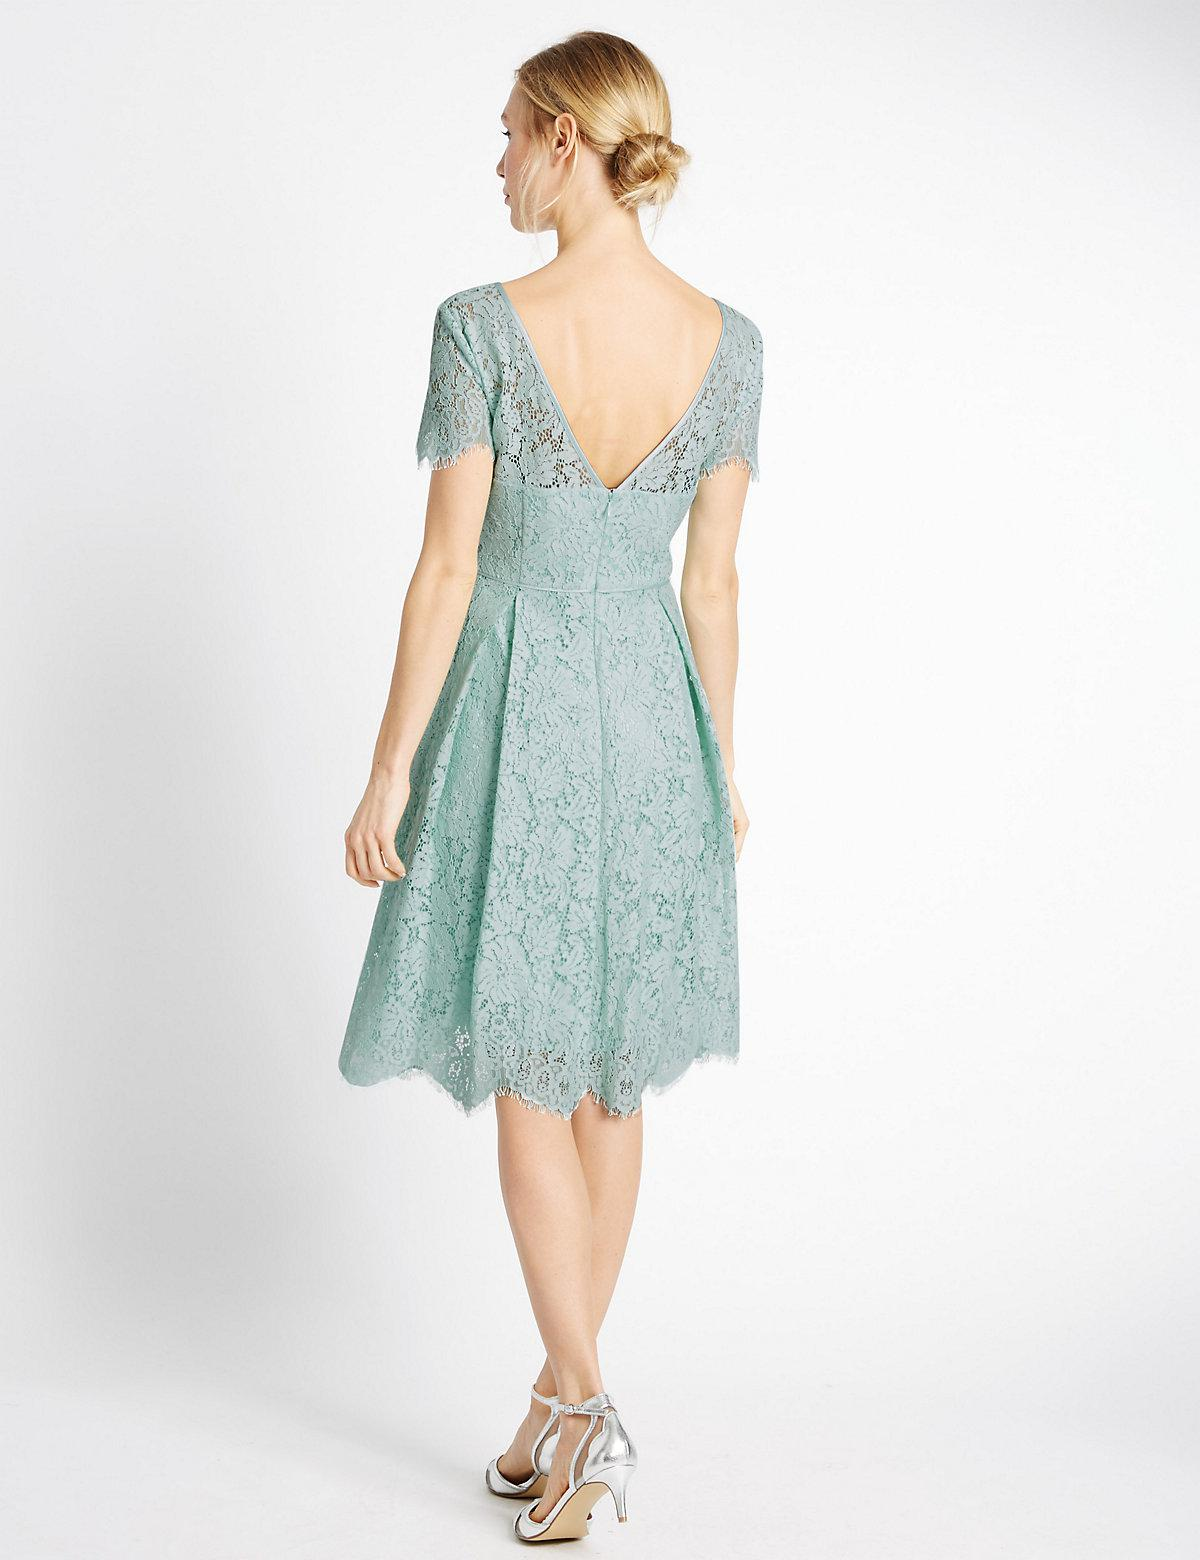 Cool Marks And Spencer Dresses For Weddings Images - Wedding Ideas ...